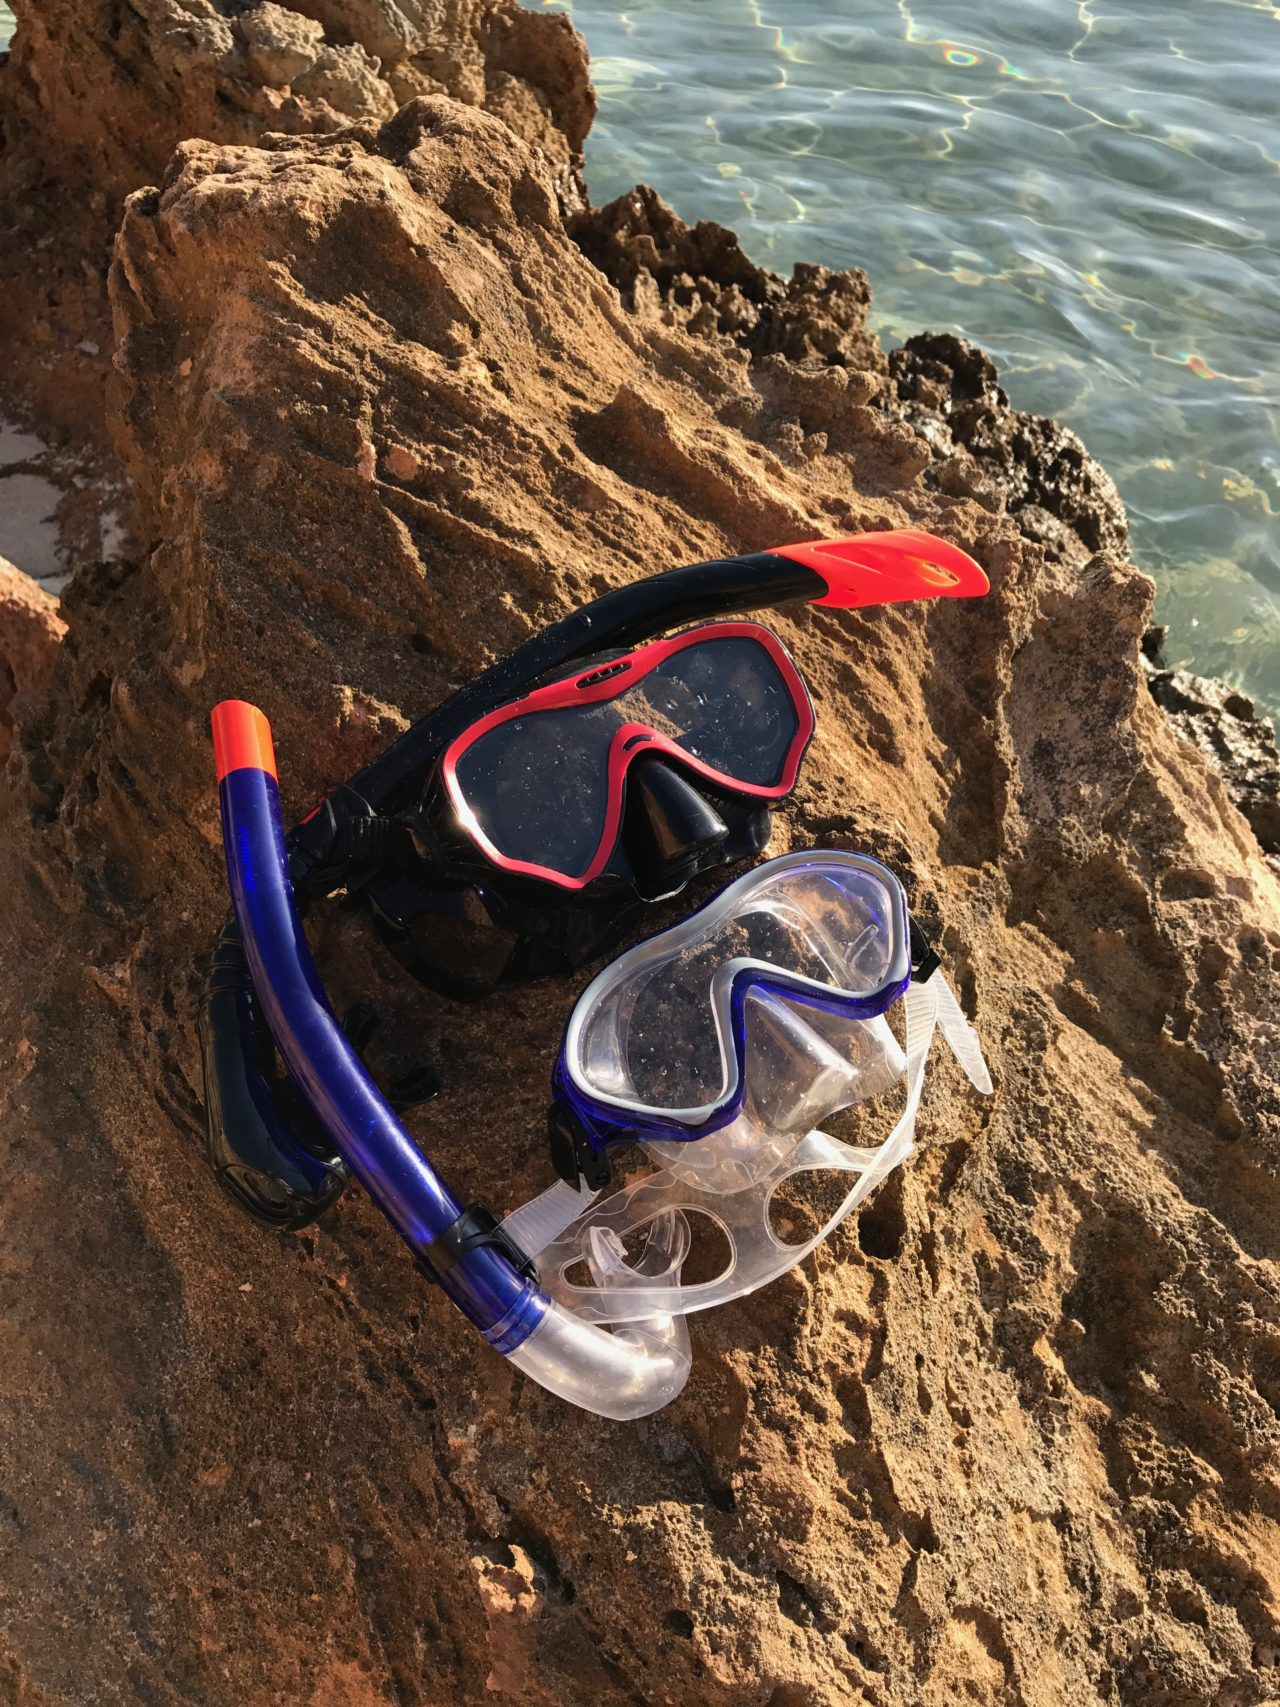 Two Sets Of Diving Goggles And Gear On Rock By Ocean